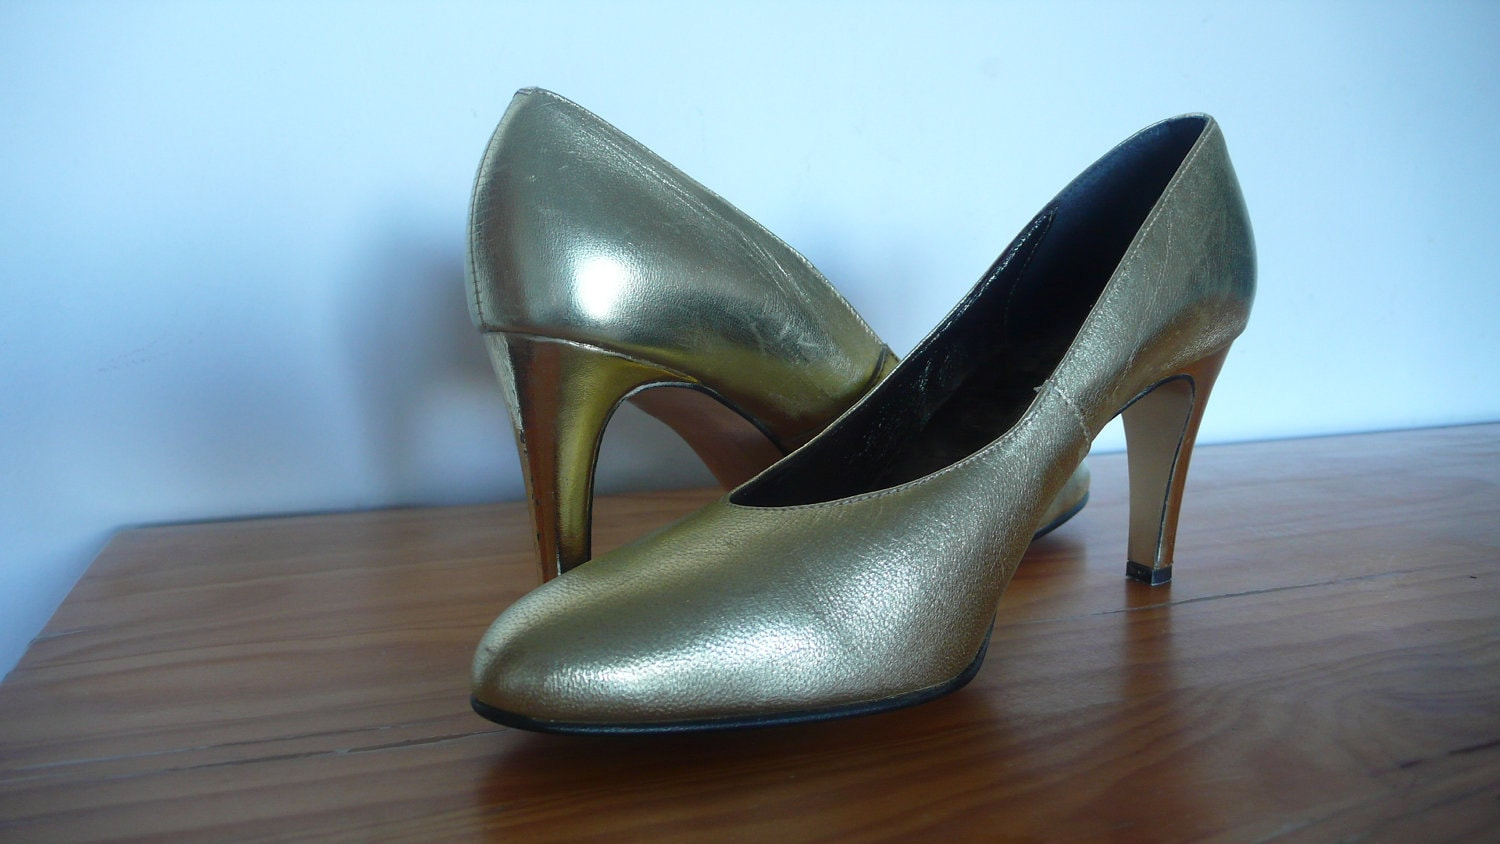 golden high heels shoes leather by bedifferentvintage on etsy